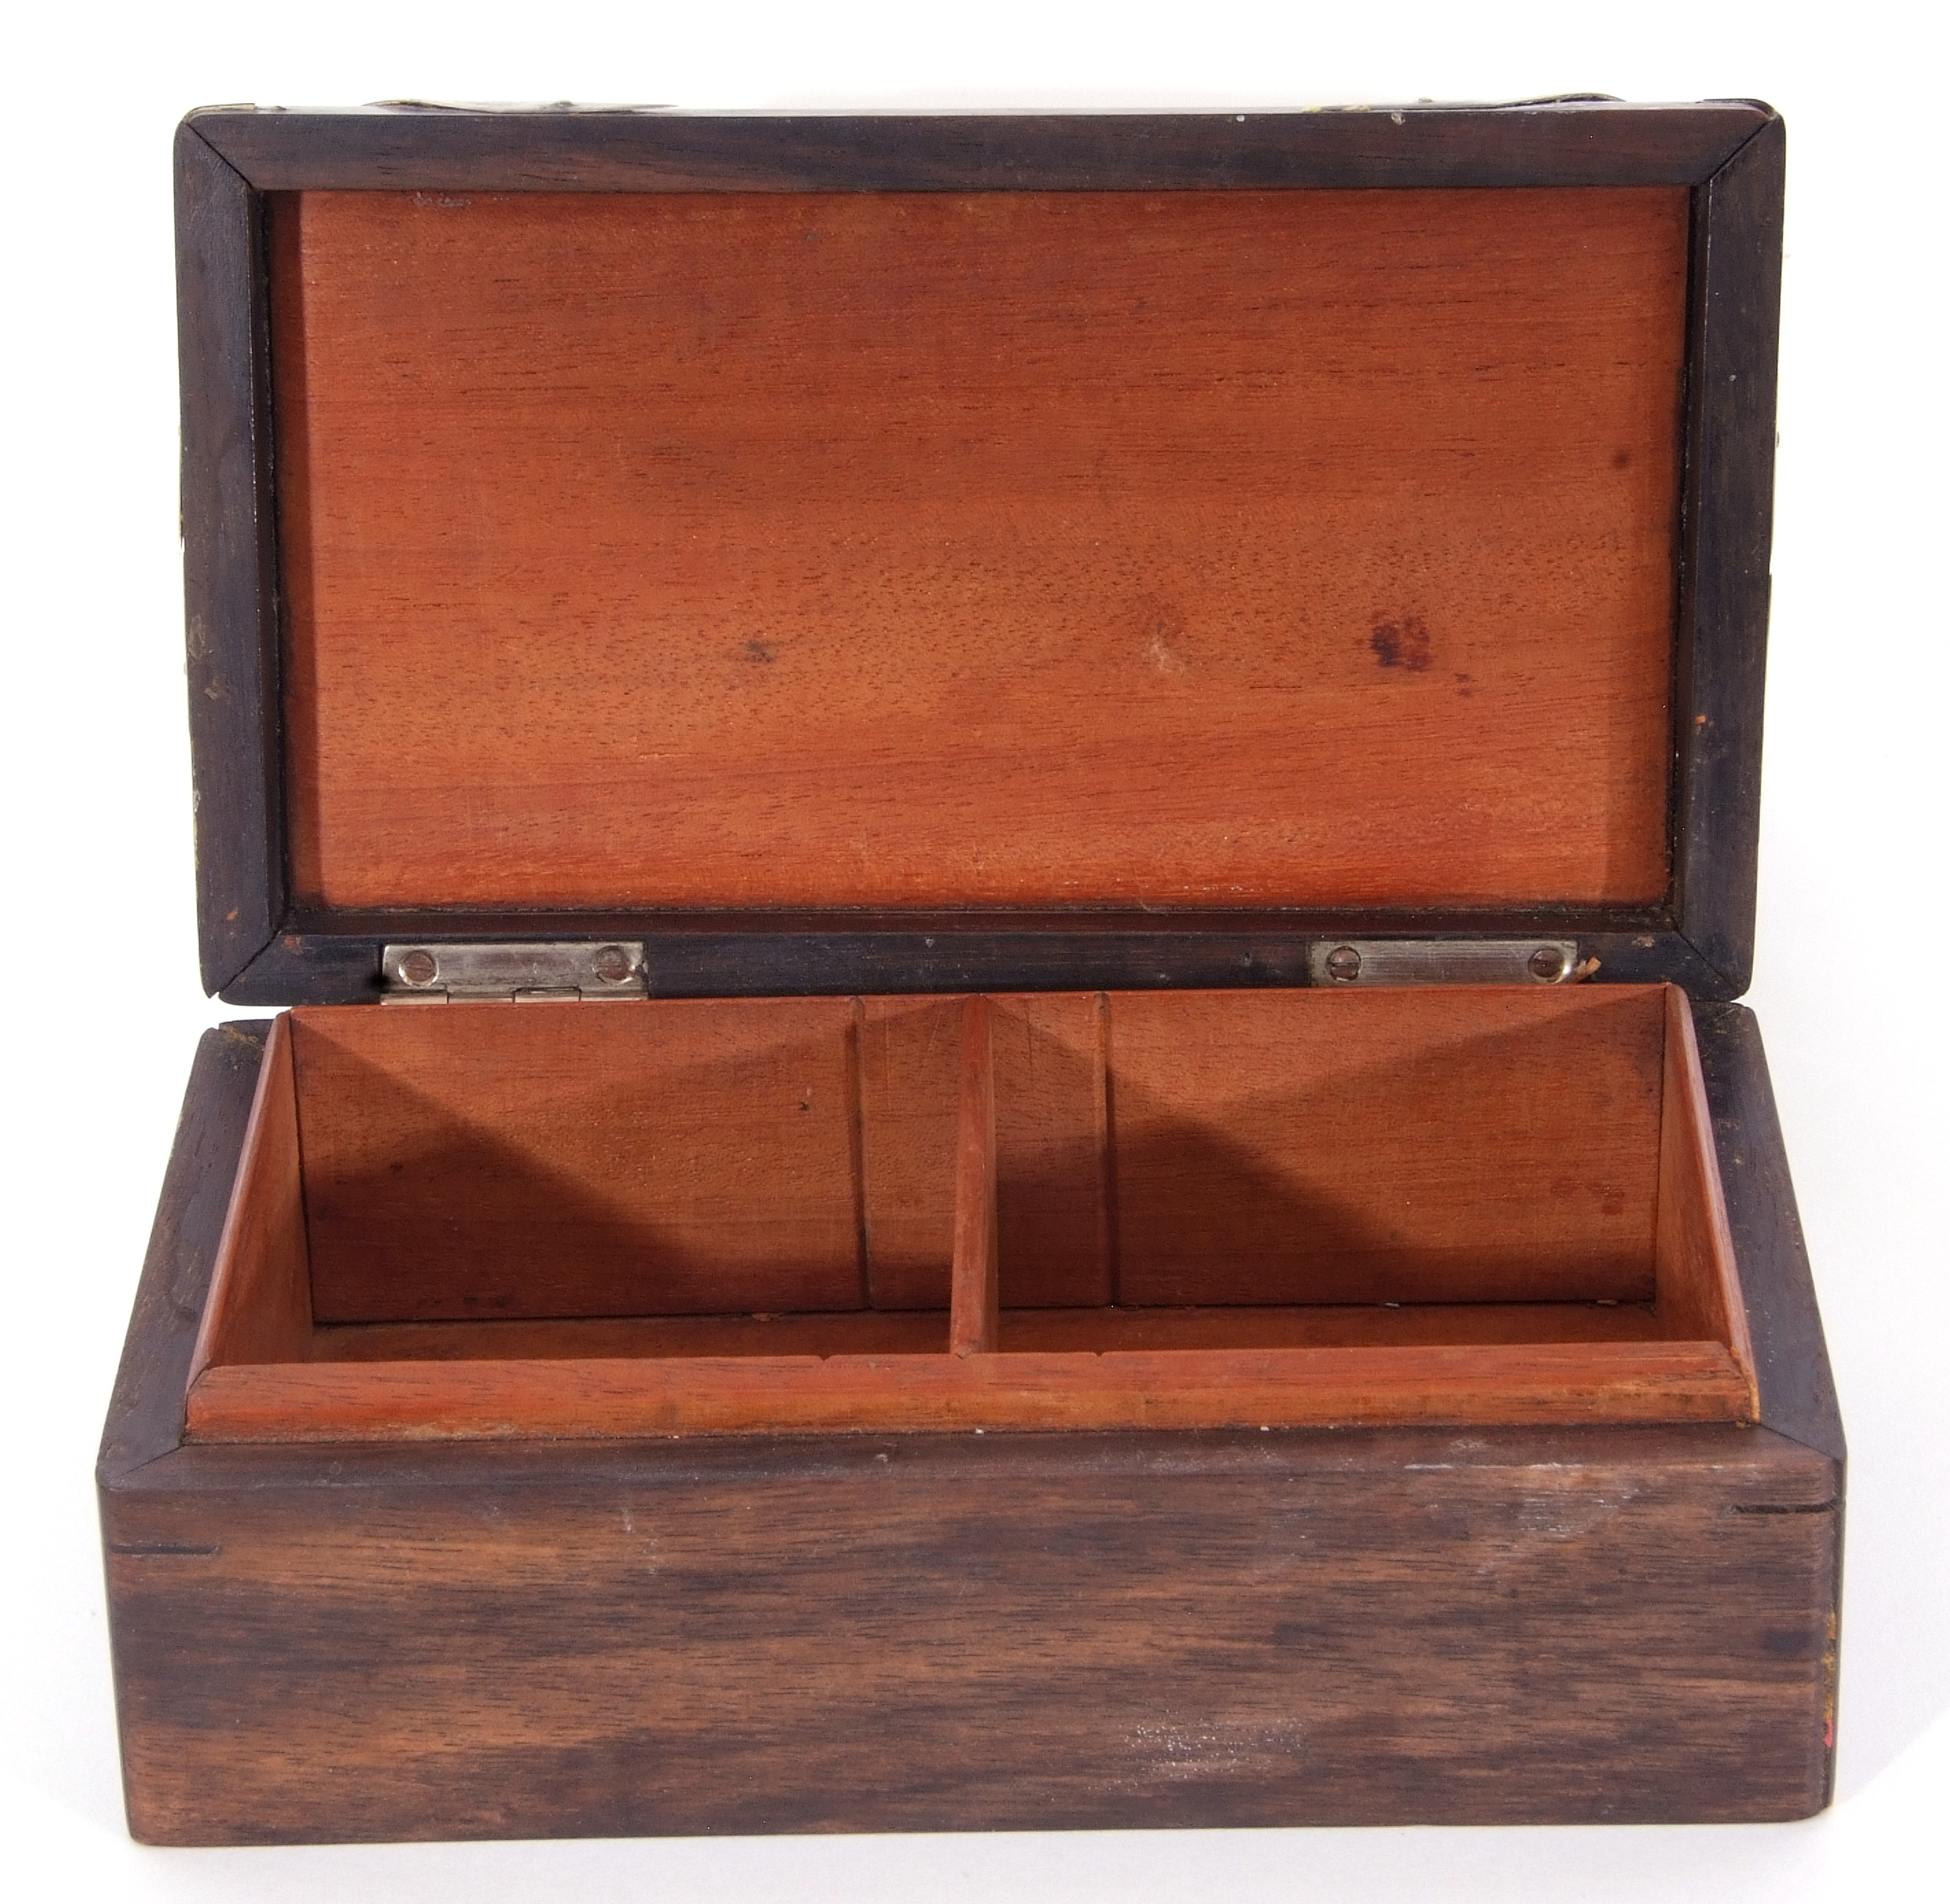 Hardwood and silver mounted table cigarette box of rectangular domed form, the centre applied with - Image 2 of 4